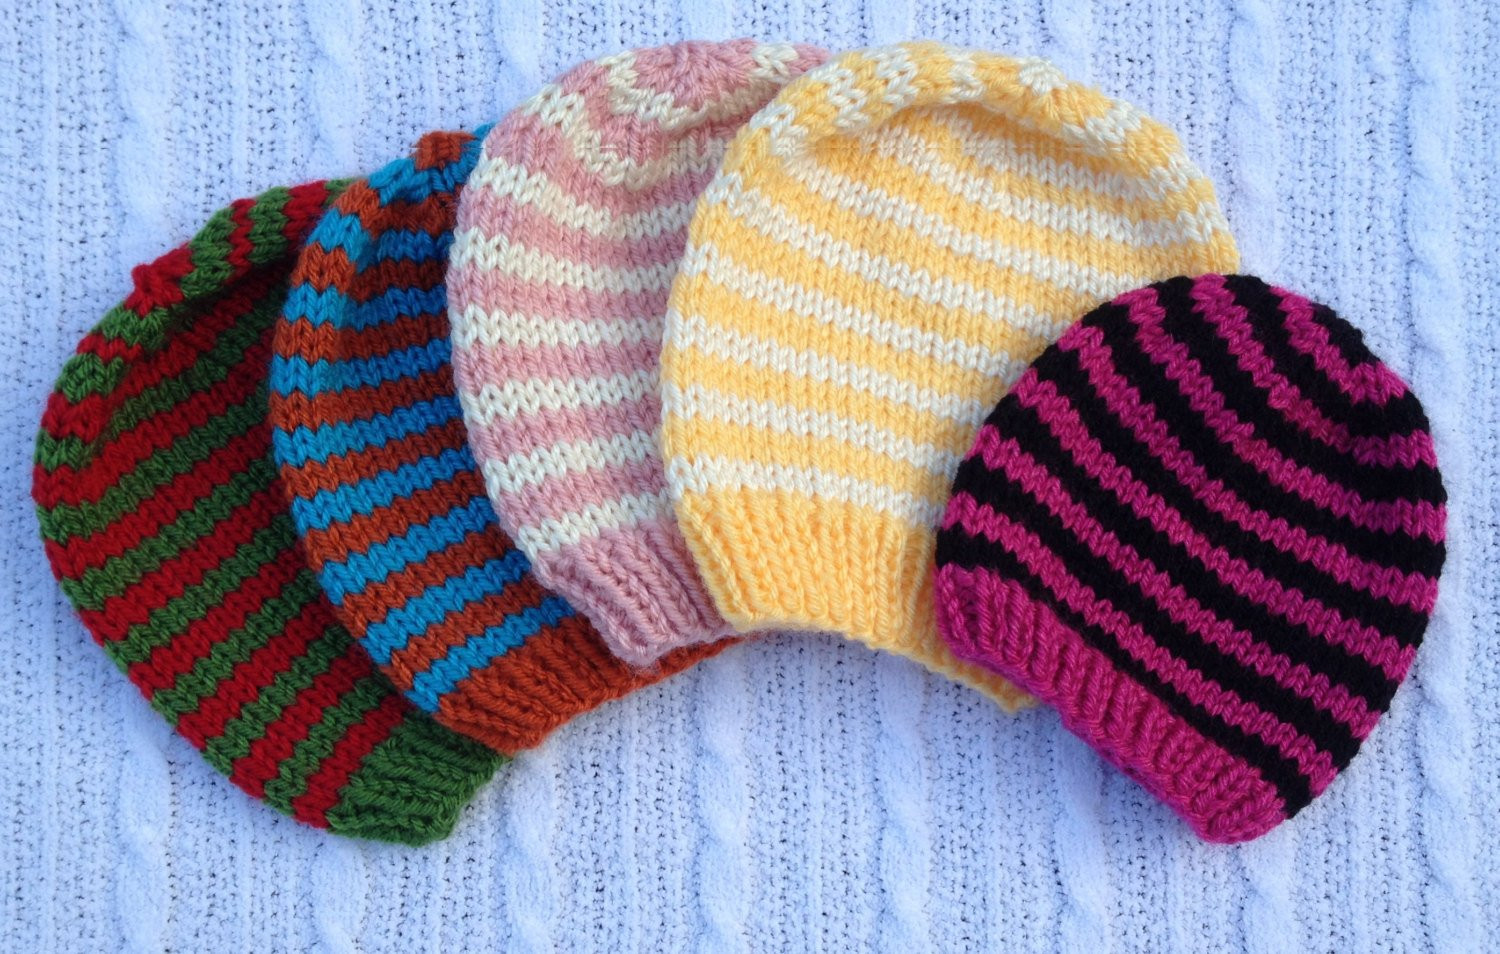 Easy Baby Knitting Patterns Unique Pdf Knitting Pattern Basic Simple Baby Beanie Hat Of Innovative 50 Photos Easy Baby Knitting Patterns